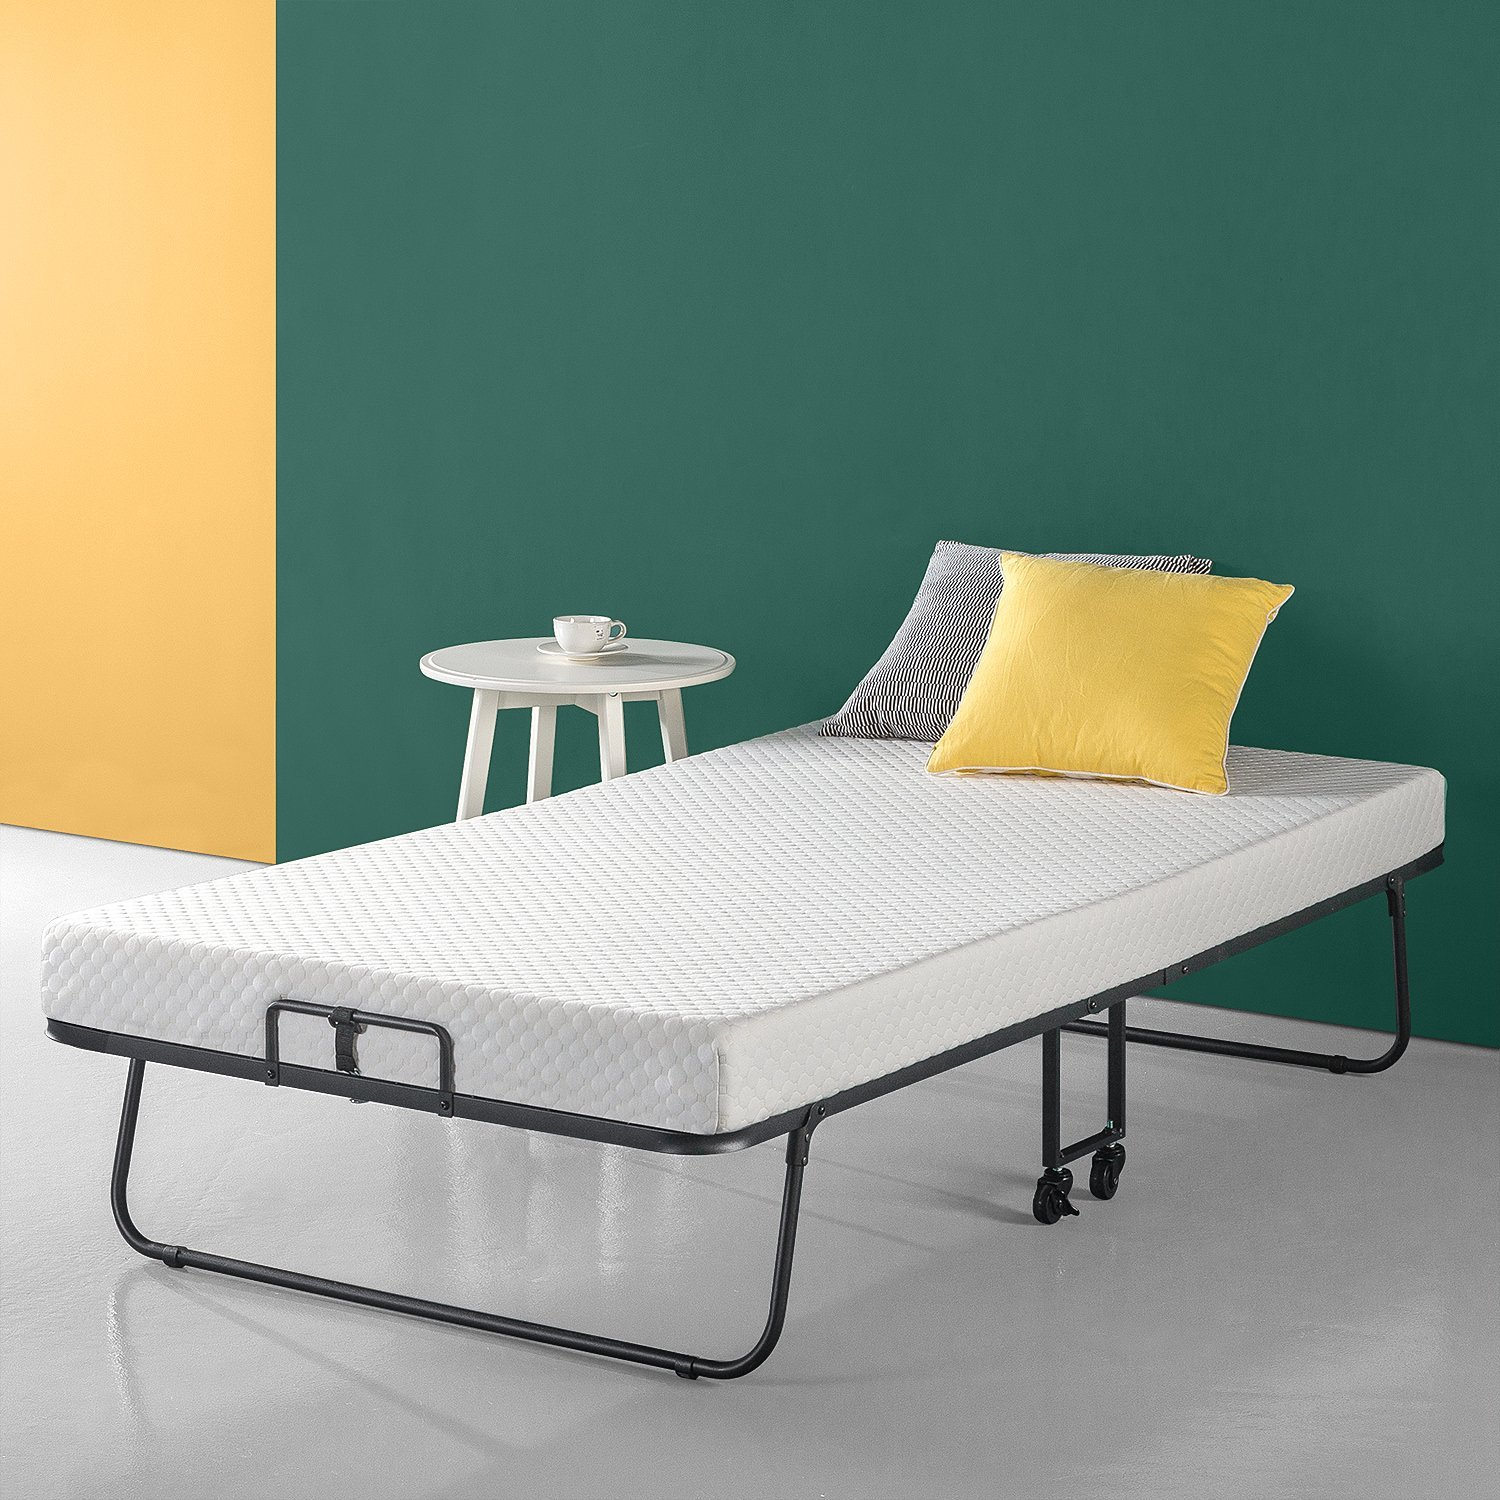 Jay Be Metal Folding Value Guest Bed With Memory Foam Mattress Pretty And Colorful Furniture